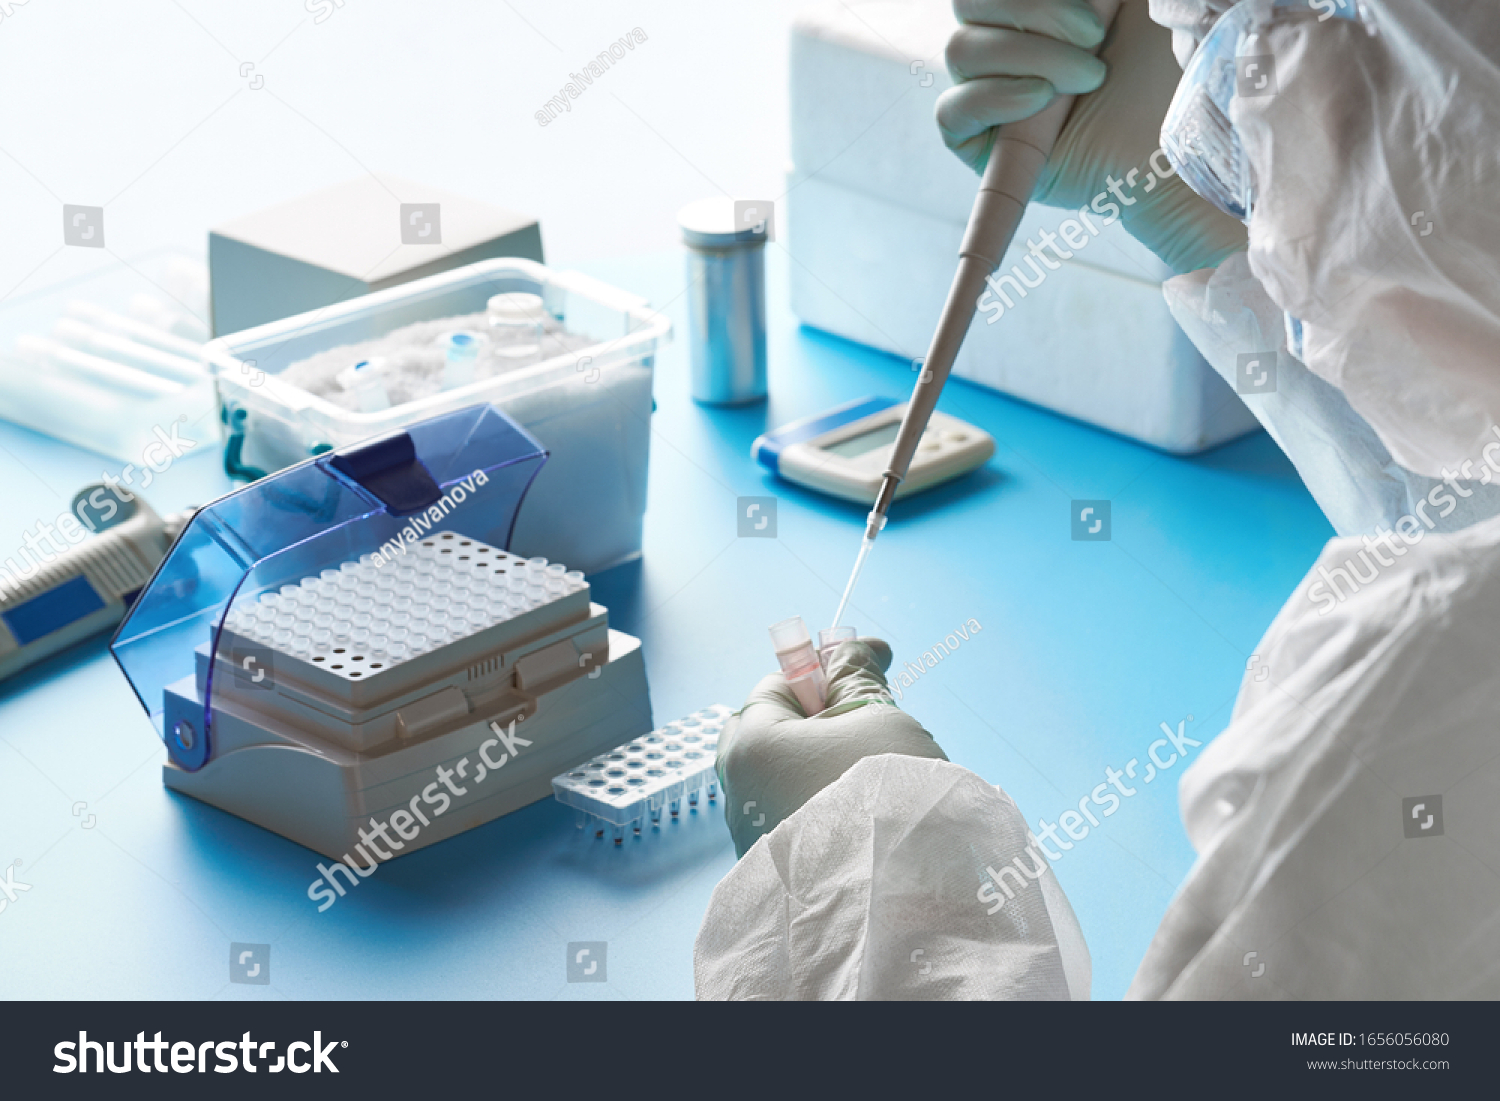 Epidemiologist in protective suit, mask and glasses works with patient swabs to detect specific region of 2019-nCoV virus causing Covid-19 viral pneumonia. SARS-COV-2 pcr diagnostics kit concept. #1656056080